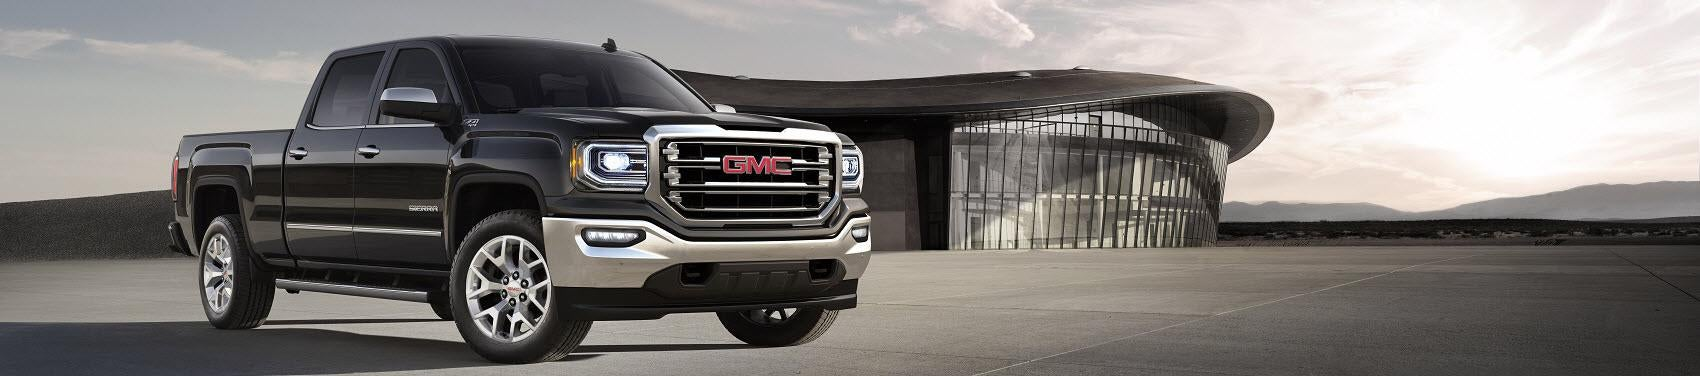 Gmc Dealers Indianapolis >> Used Gmc Dealership In Indiana Andy Mohr Automotive